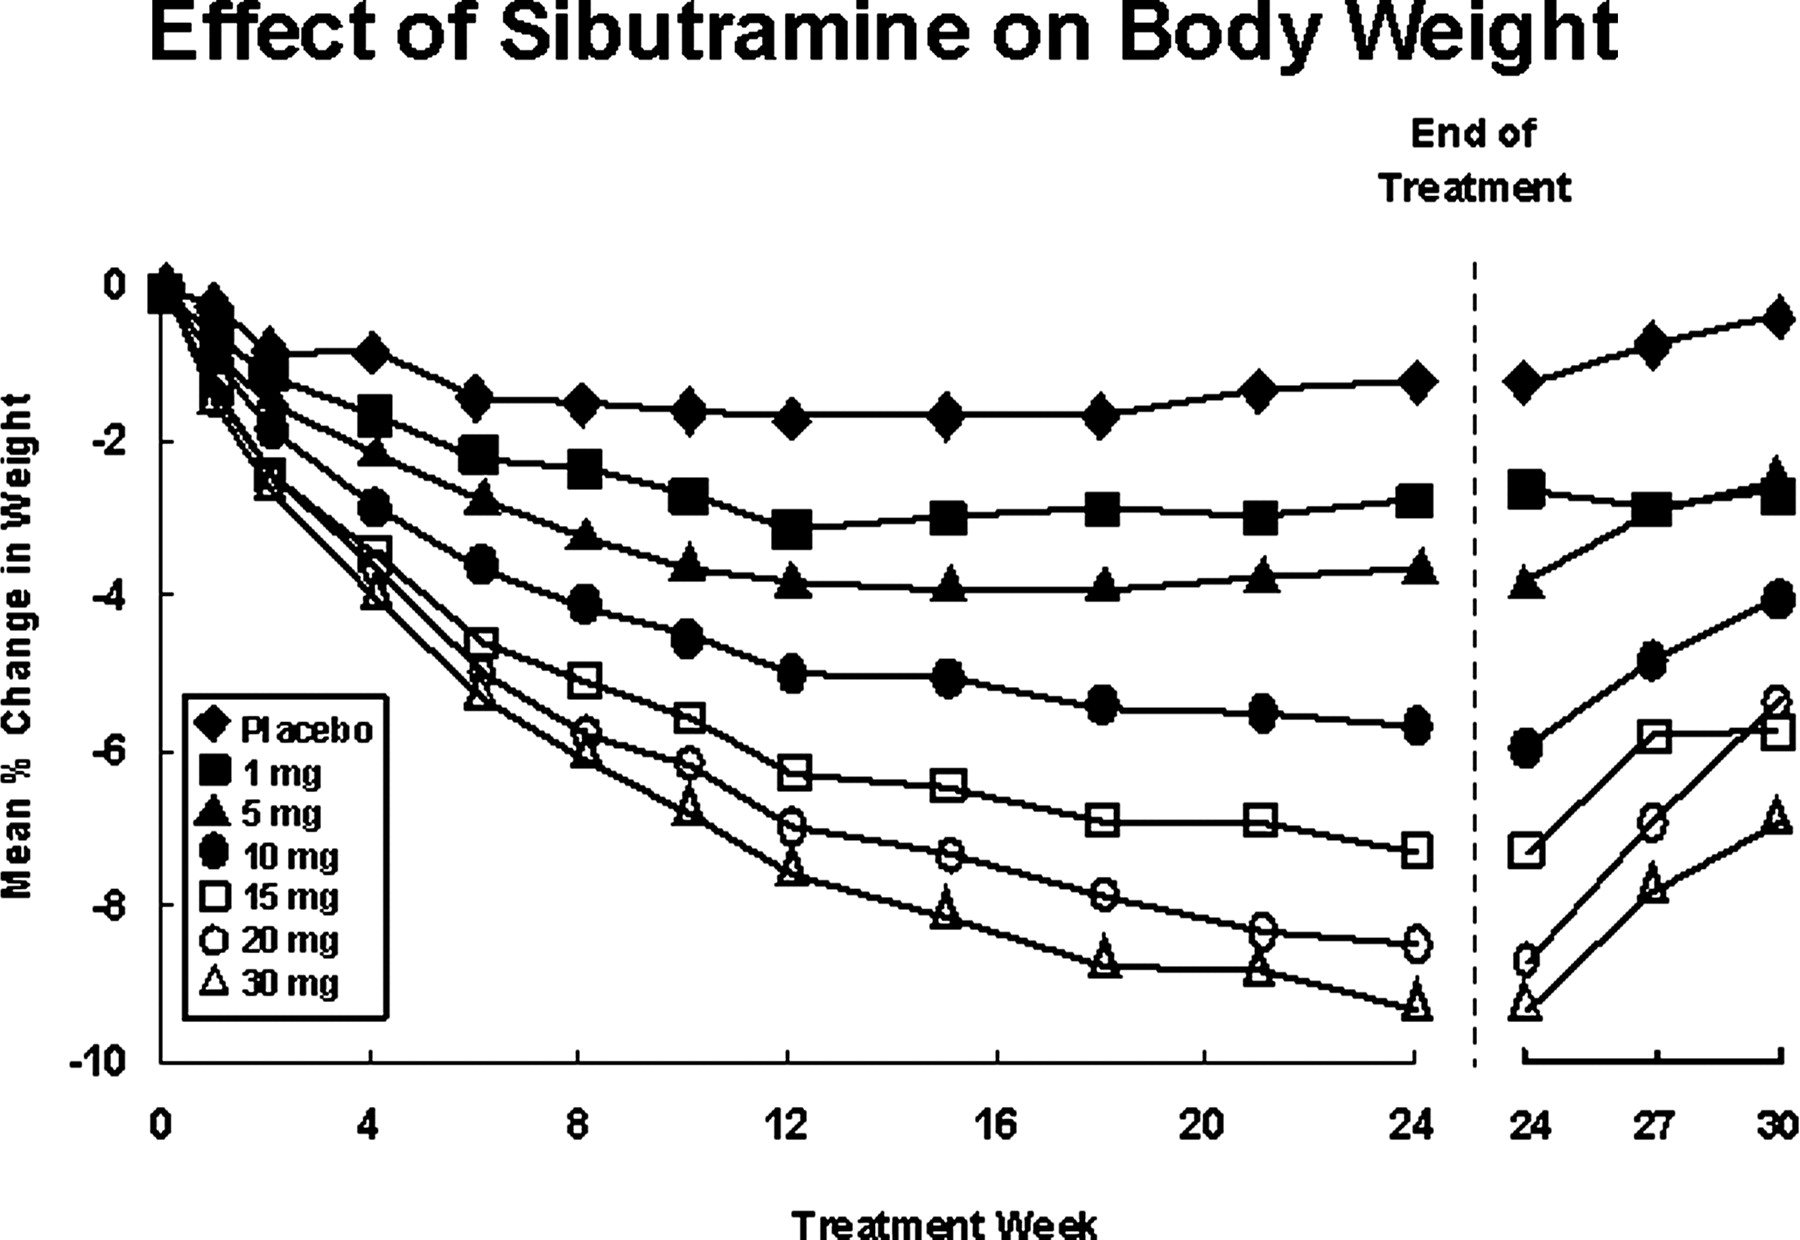 Pharmacological Treatment of the Overweight Patient